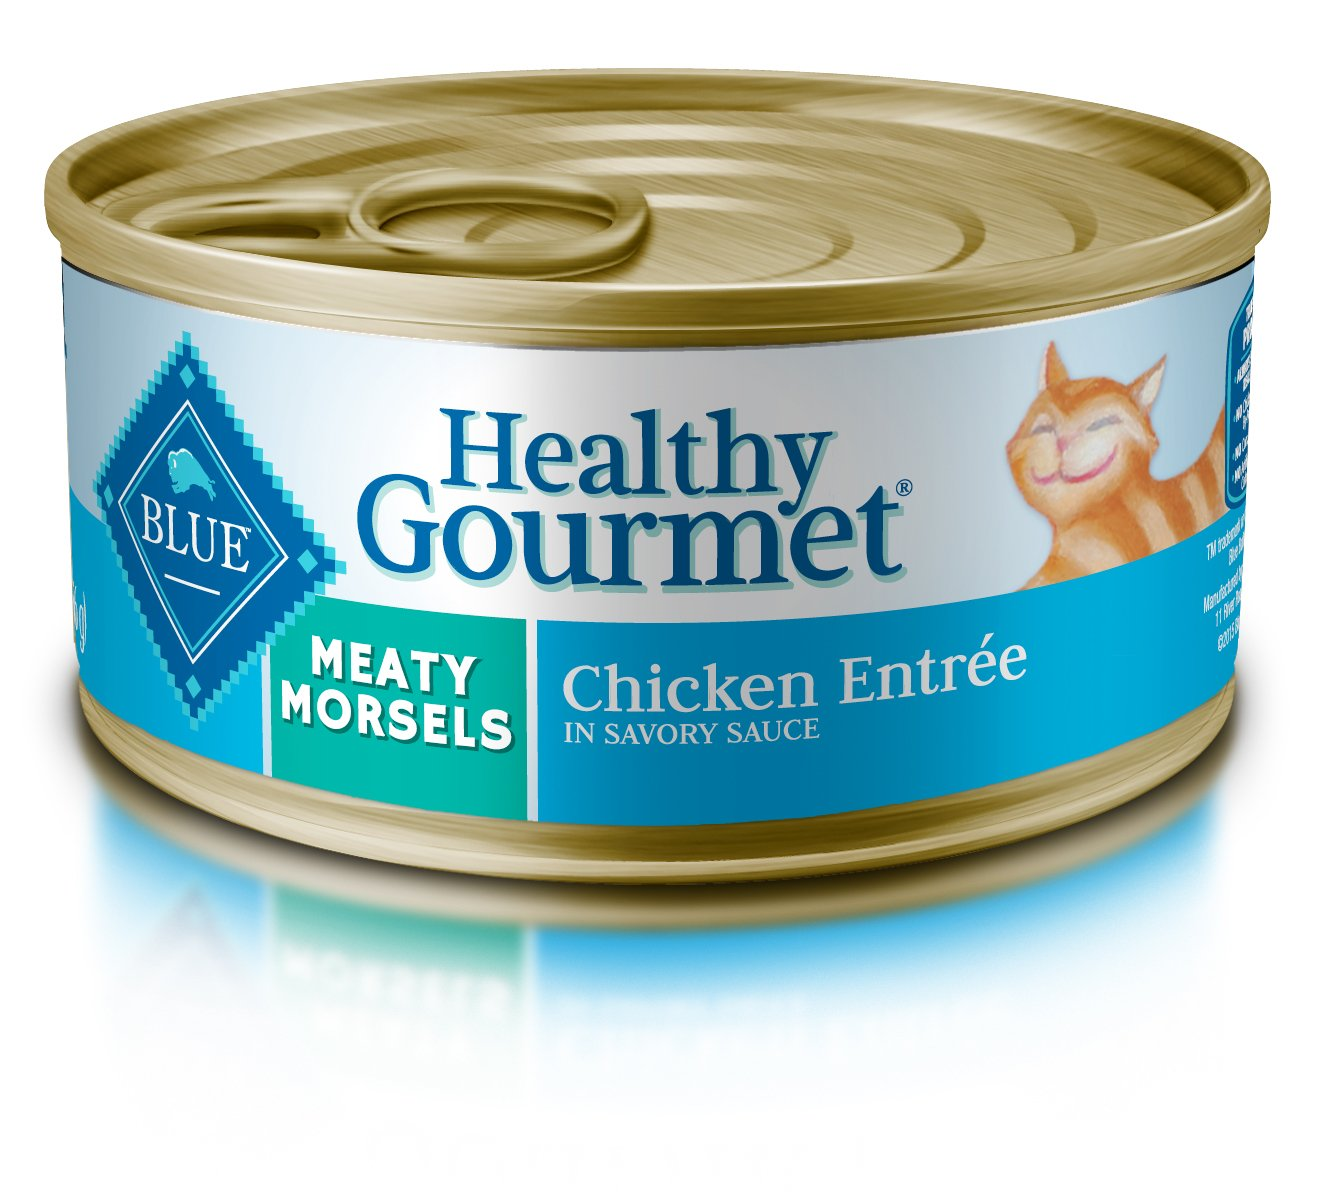 Blue Buffalo Healthy Gourmet Natural Adult Meaty Morsels Wet Cat Food, Chicken 5.5-oz cans (Pack of 24) by Blue Buffalo